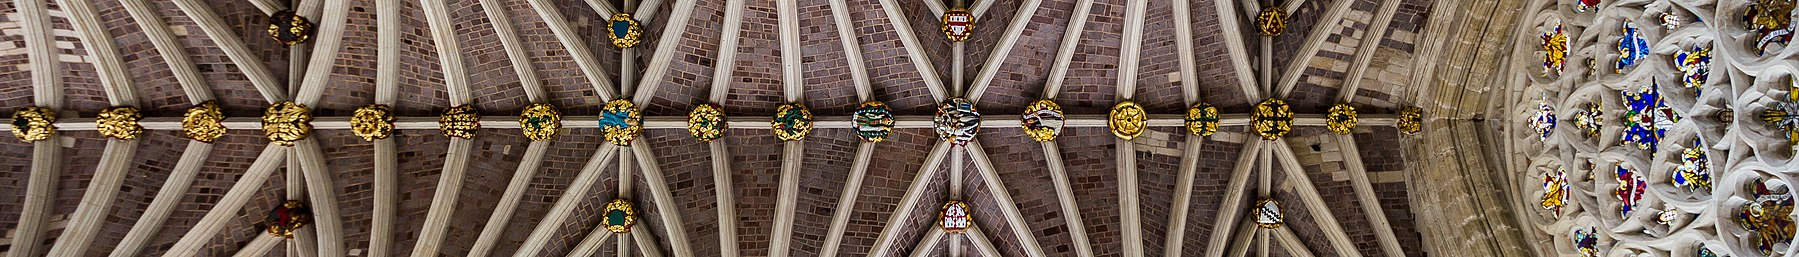 Exeter banner Cathedral Church of Saint Peter.jpg